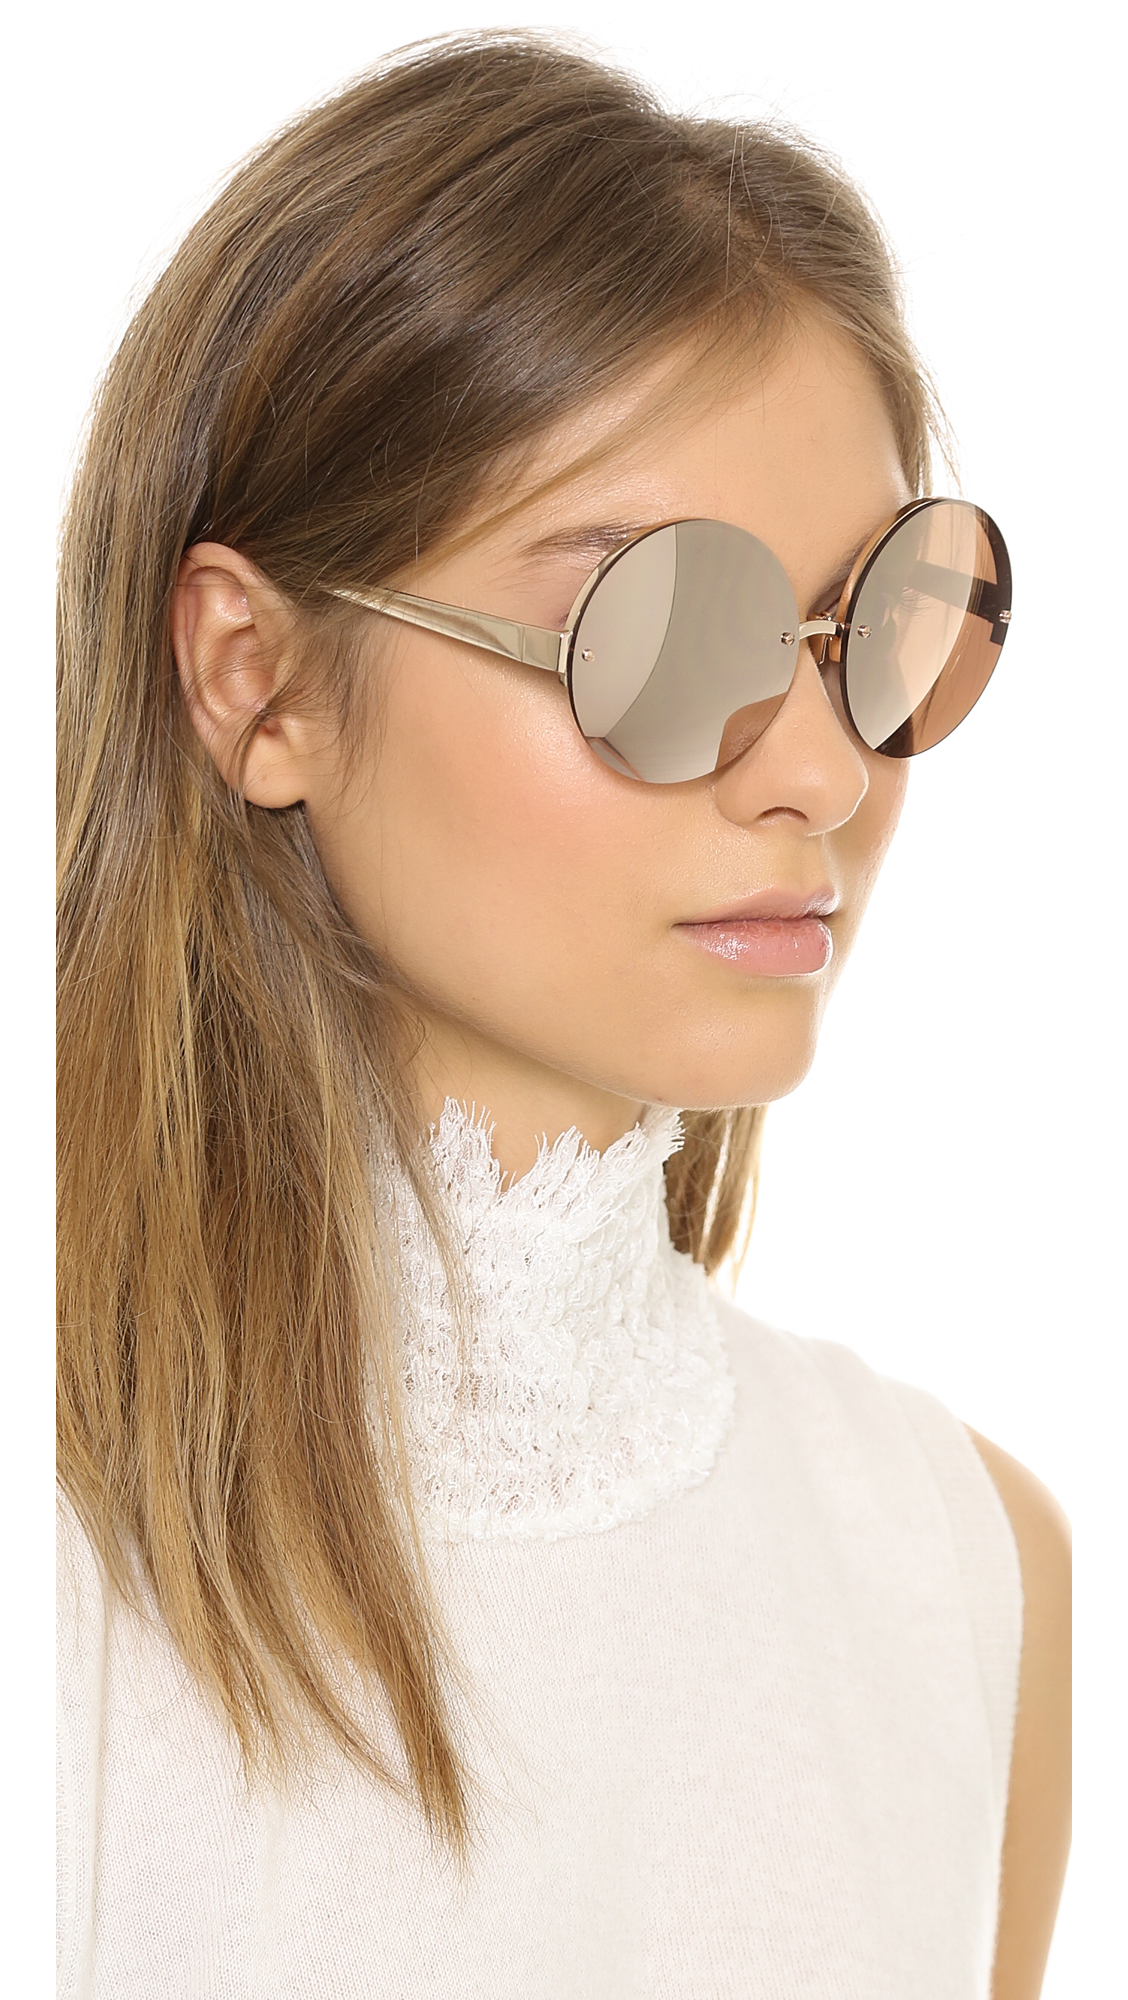 Mirrored round sunglasses Linda Farrow 7EIHObdD9